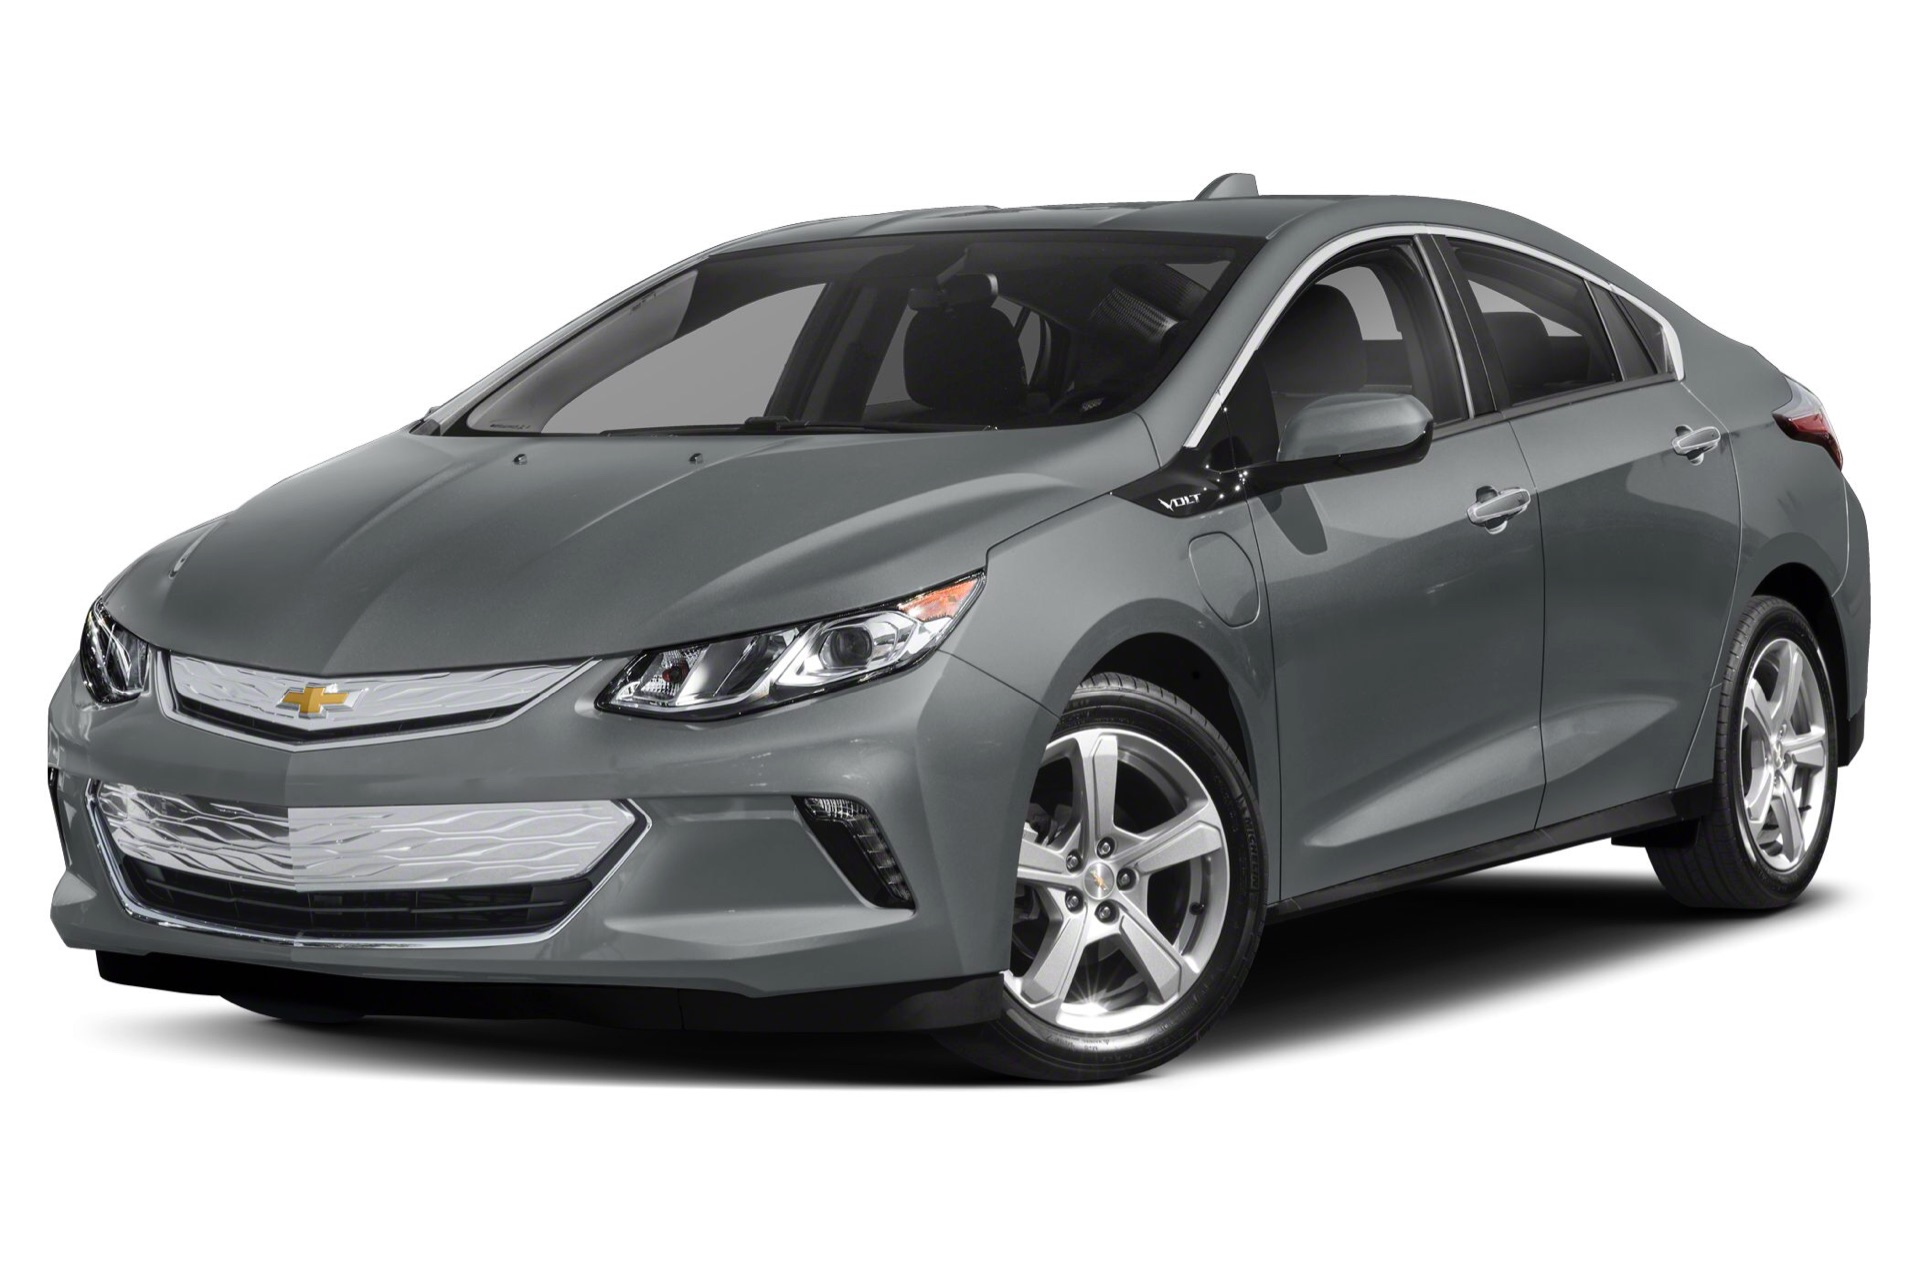 2019 Chevrolet Volt - photo 0